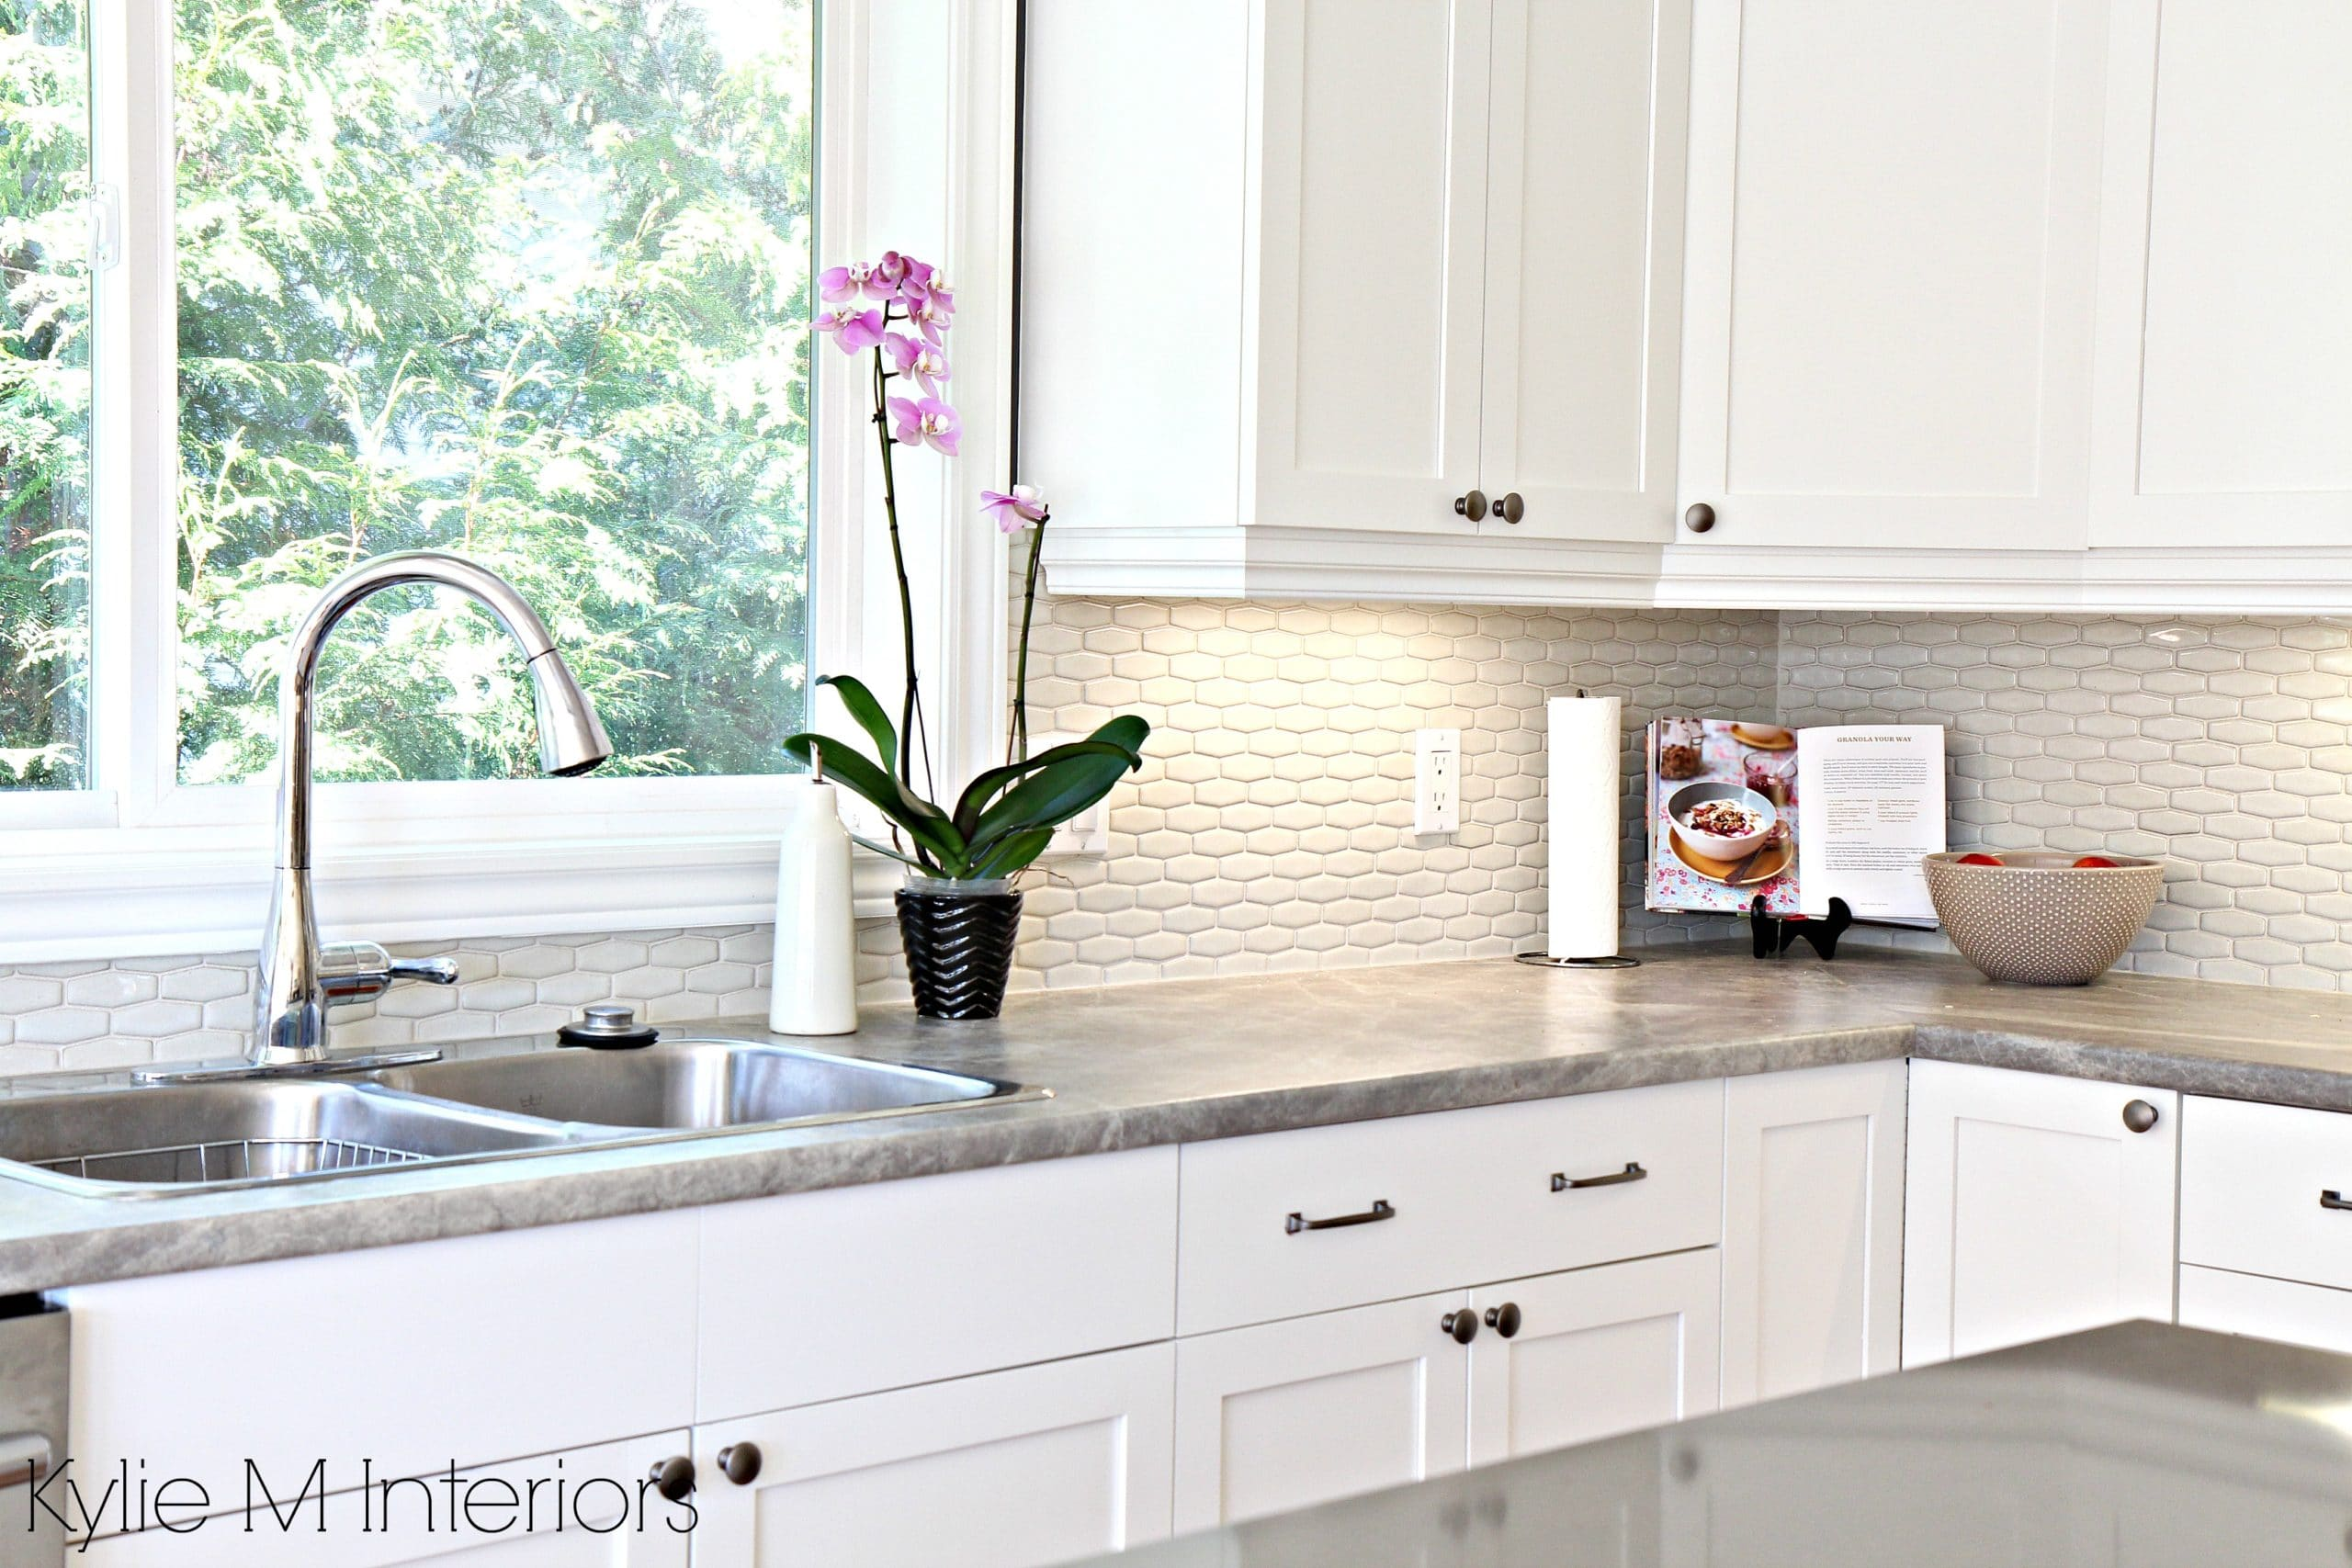 hexagon subway tile backsplash. Maple cabinets painted ... on Backsplash Maple Cabinets With Black Countertops  id=97211